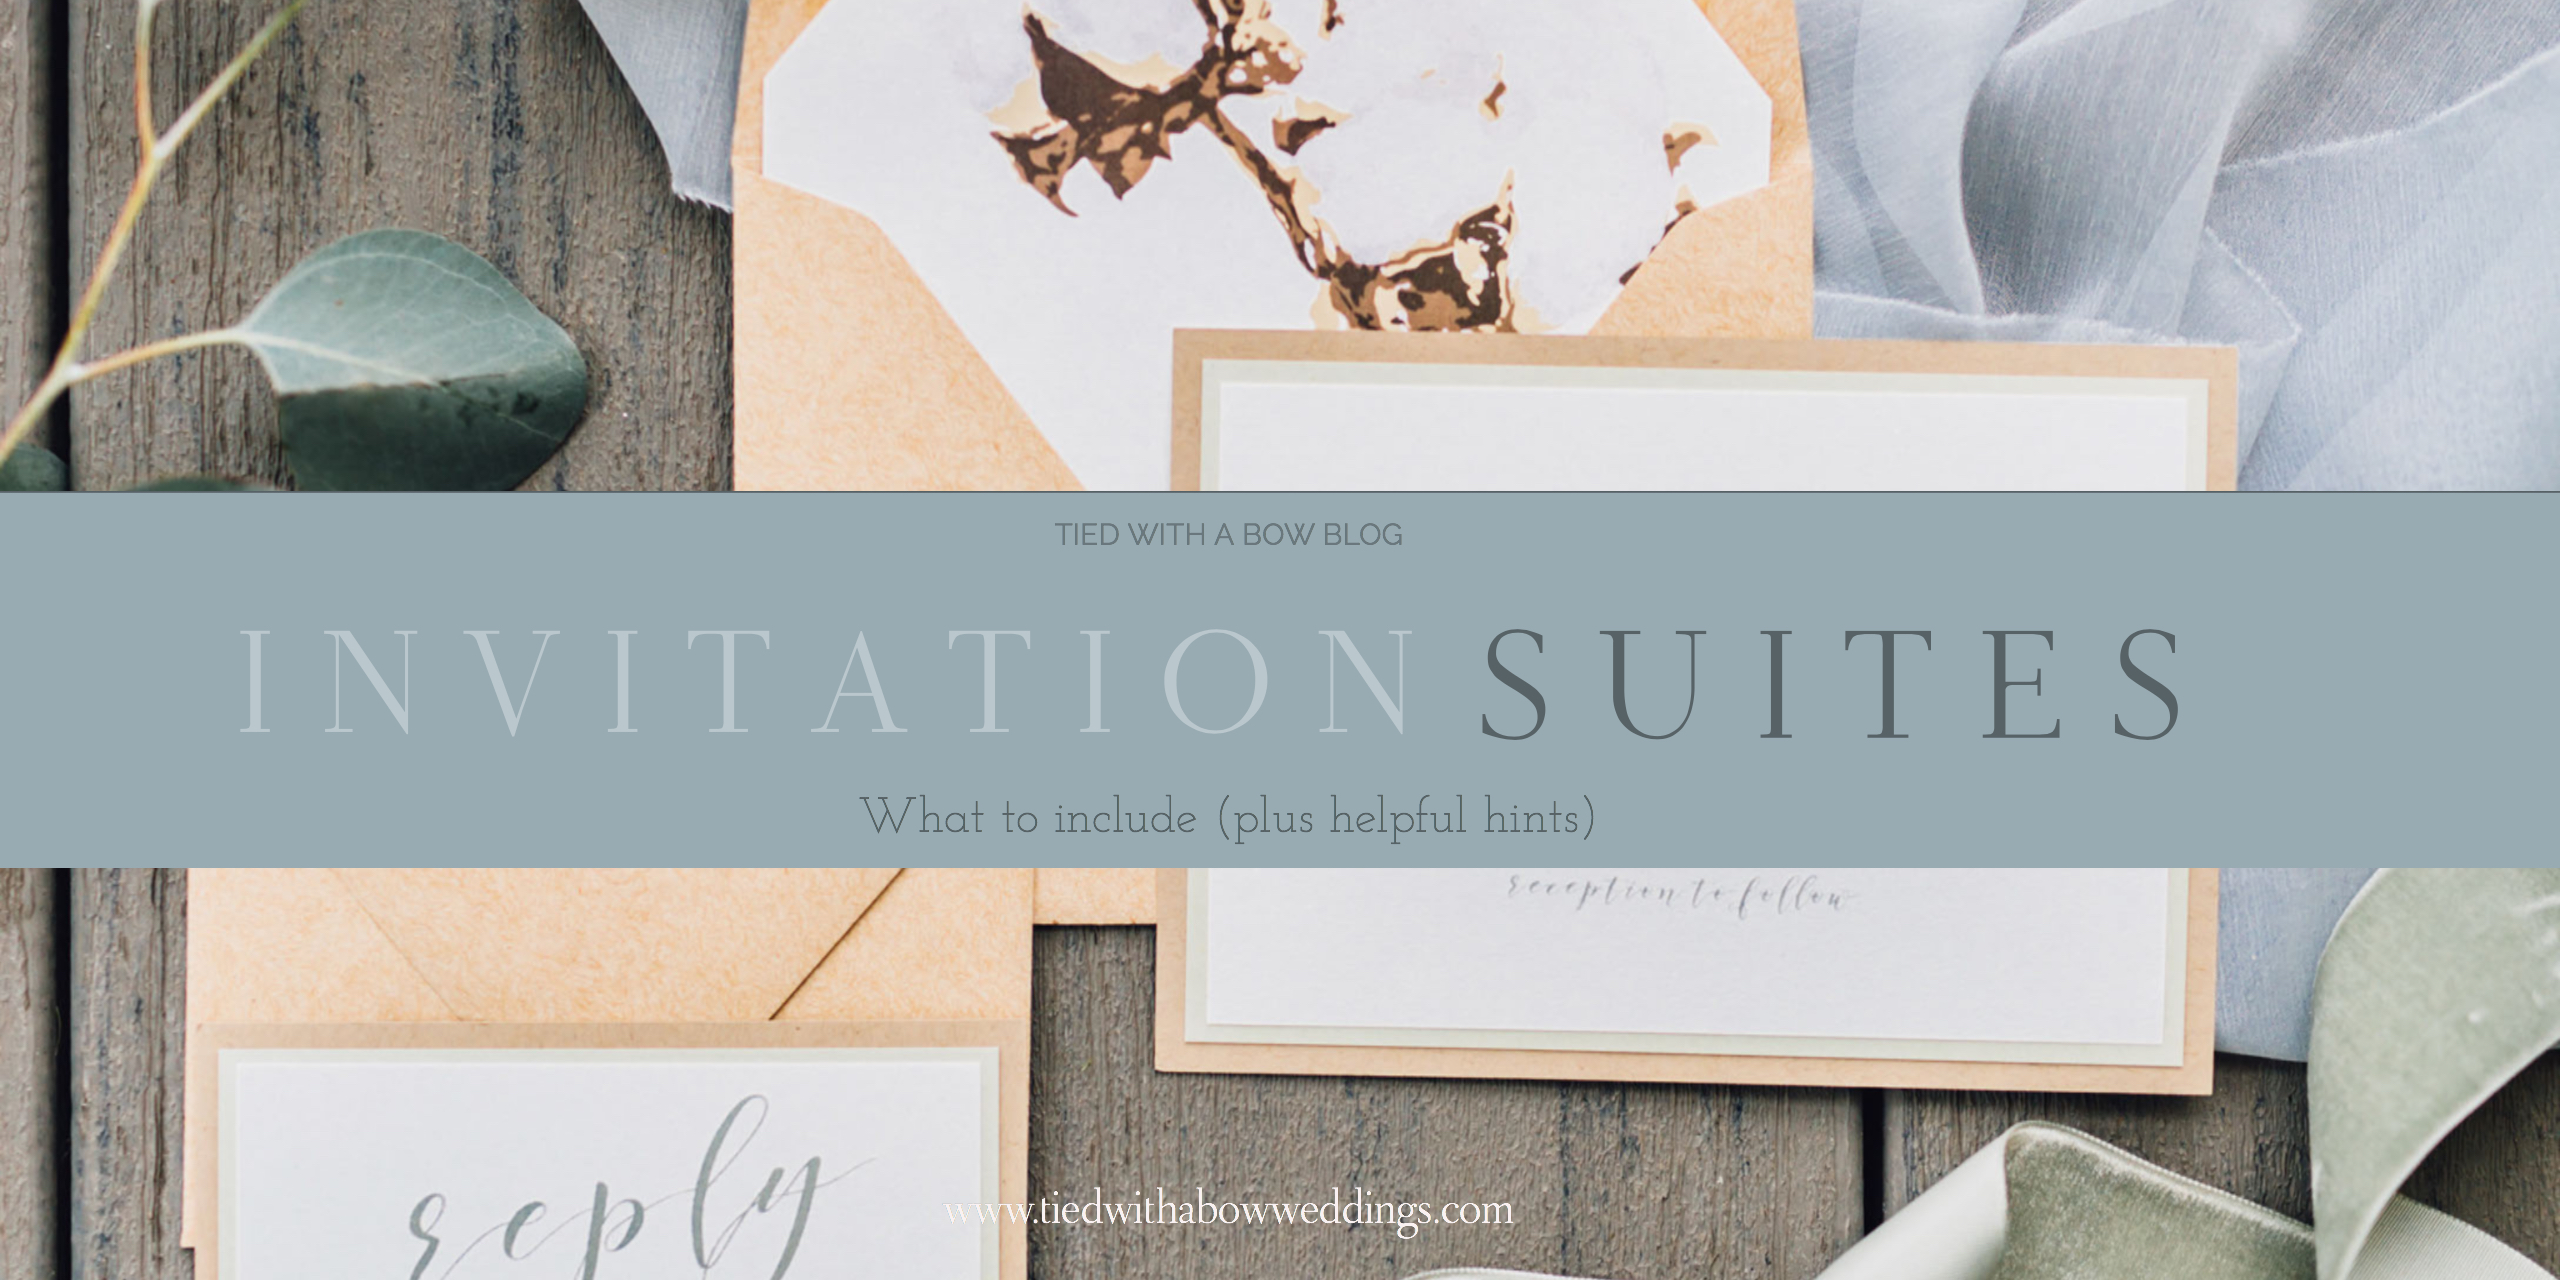 Tied With a Bow Weddings: What to Include In Your Invitation Suite